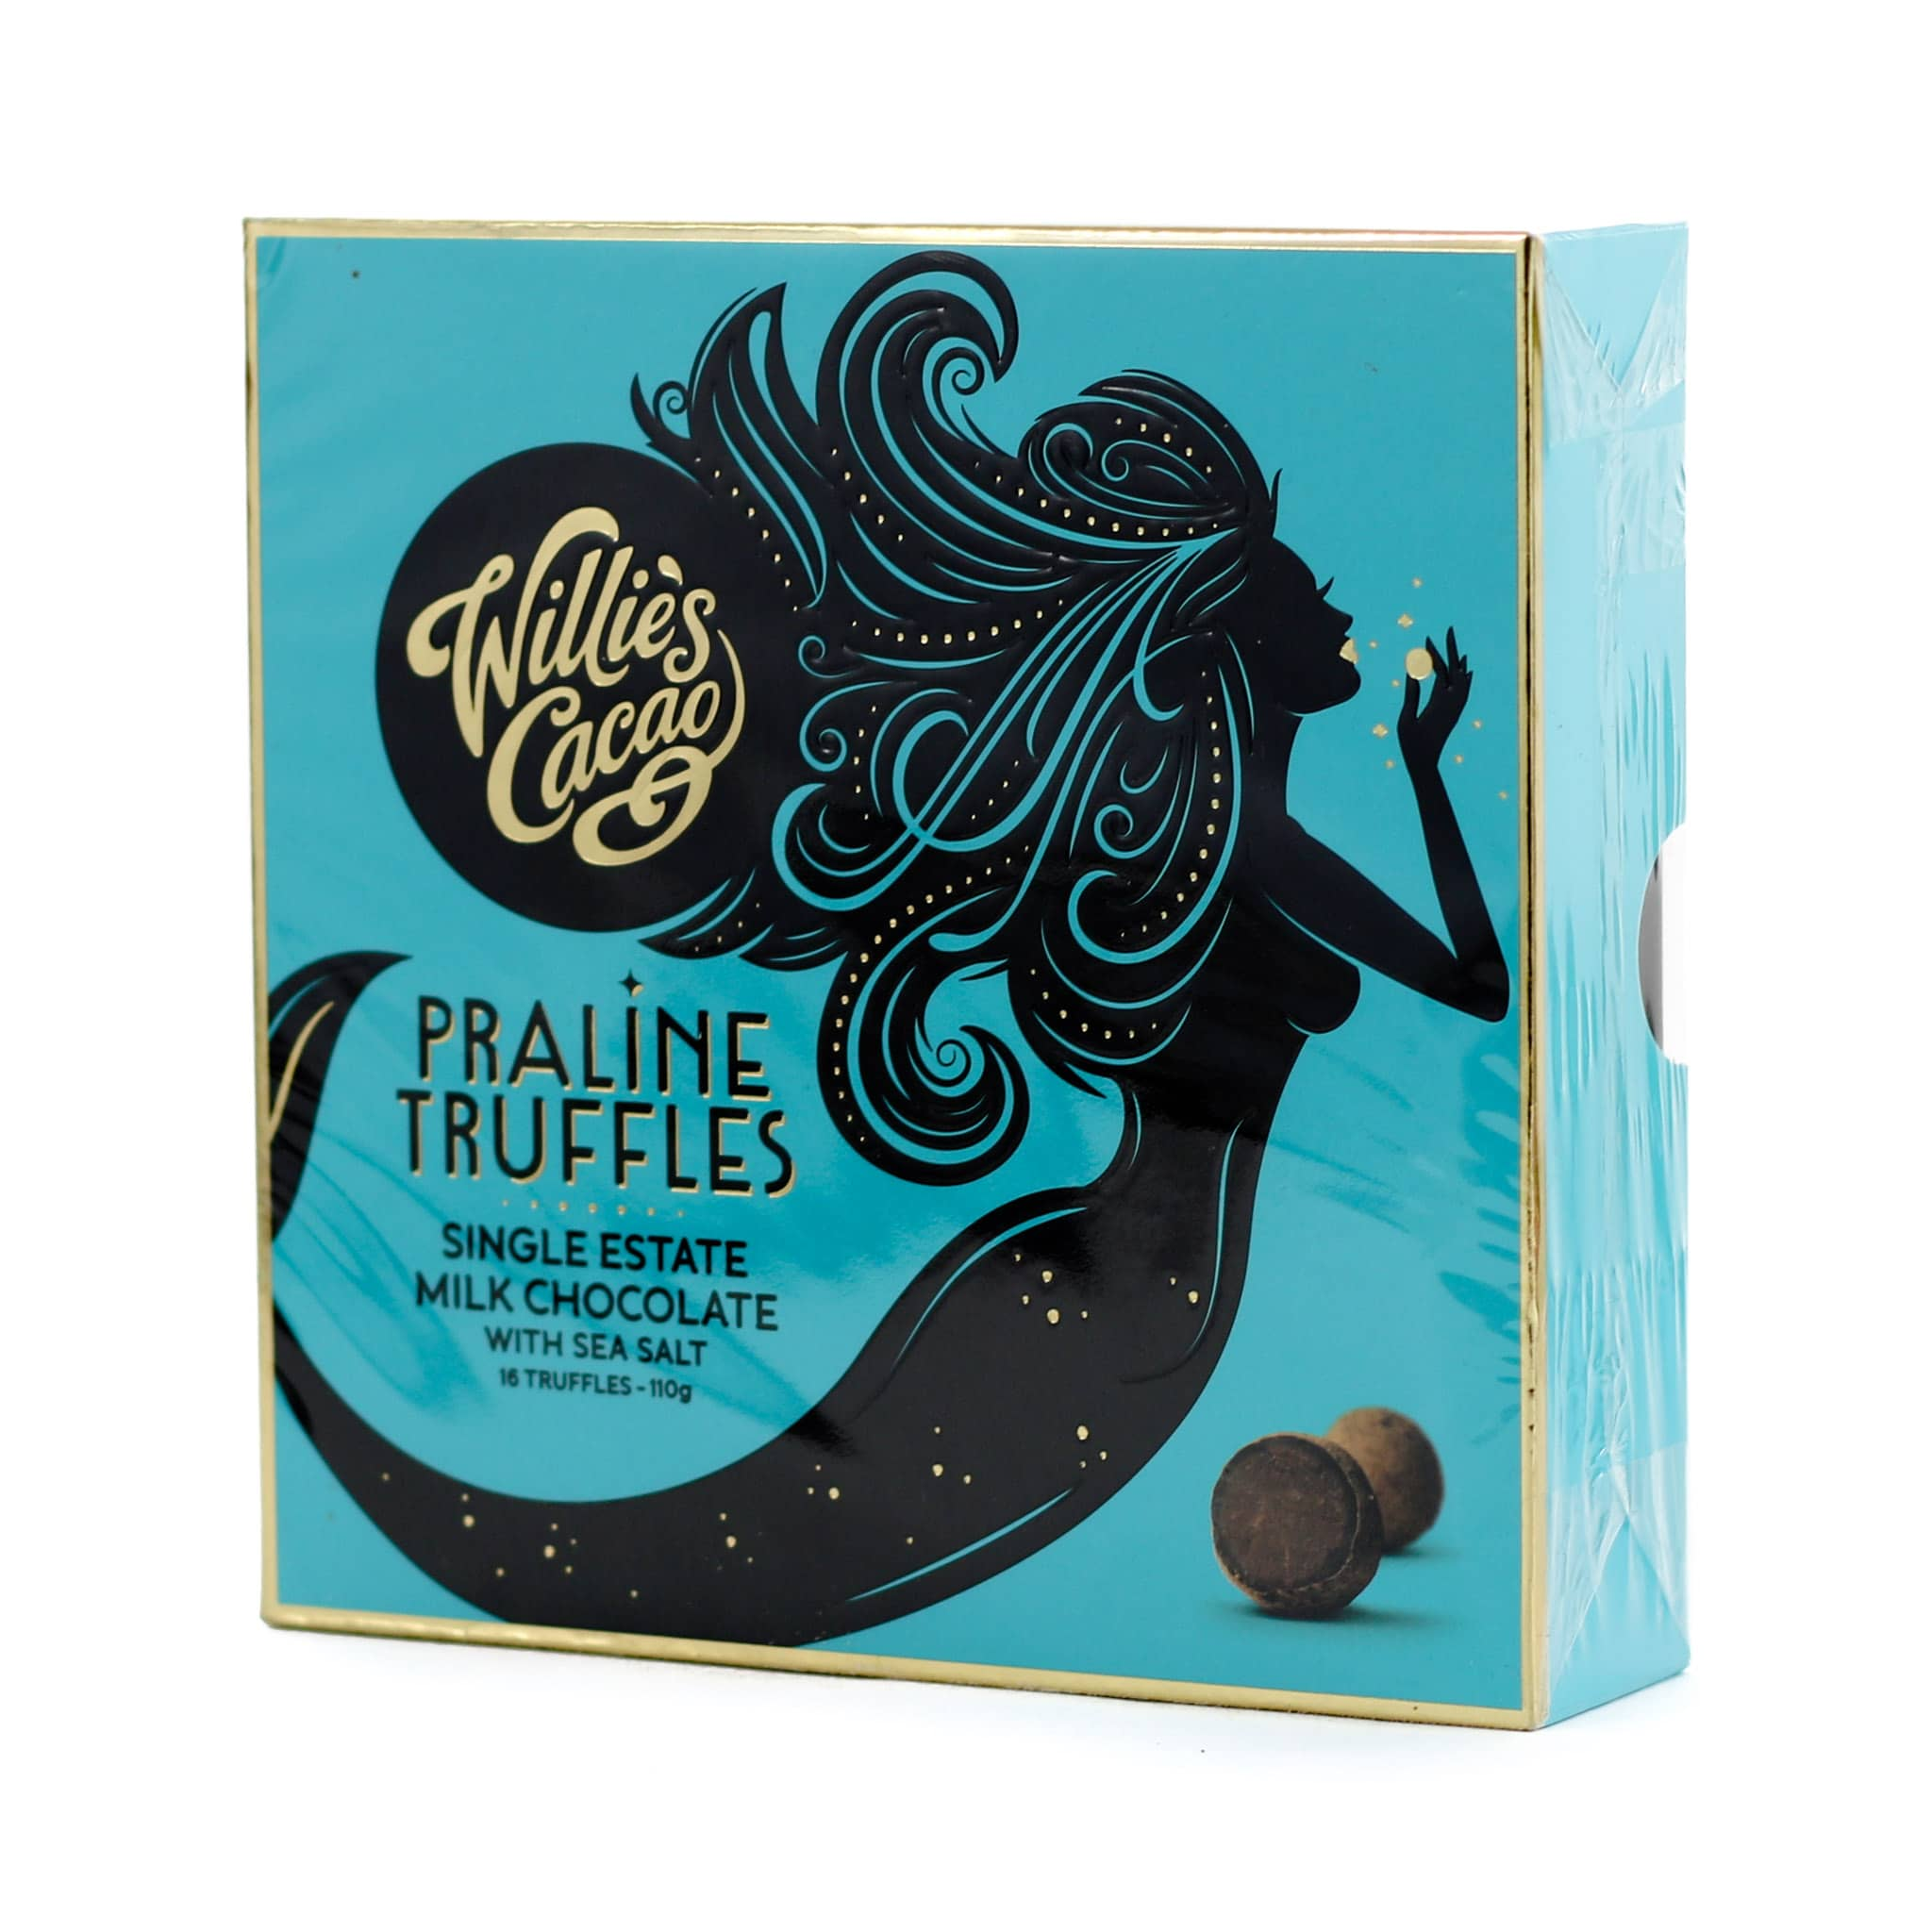 Willie's Cacao Milk Chocolate Praline Truffles with Sea Salt 110g